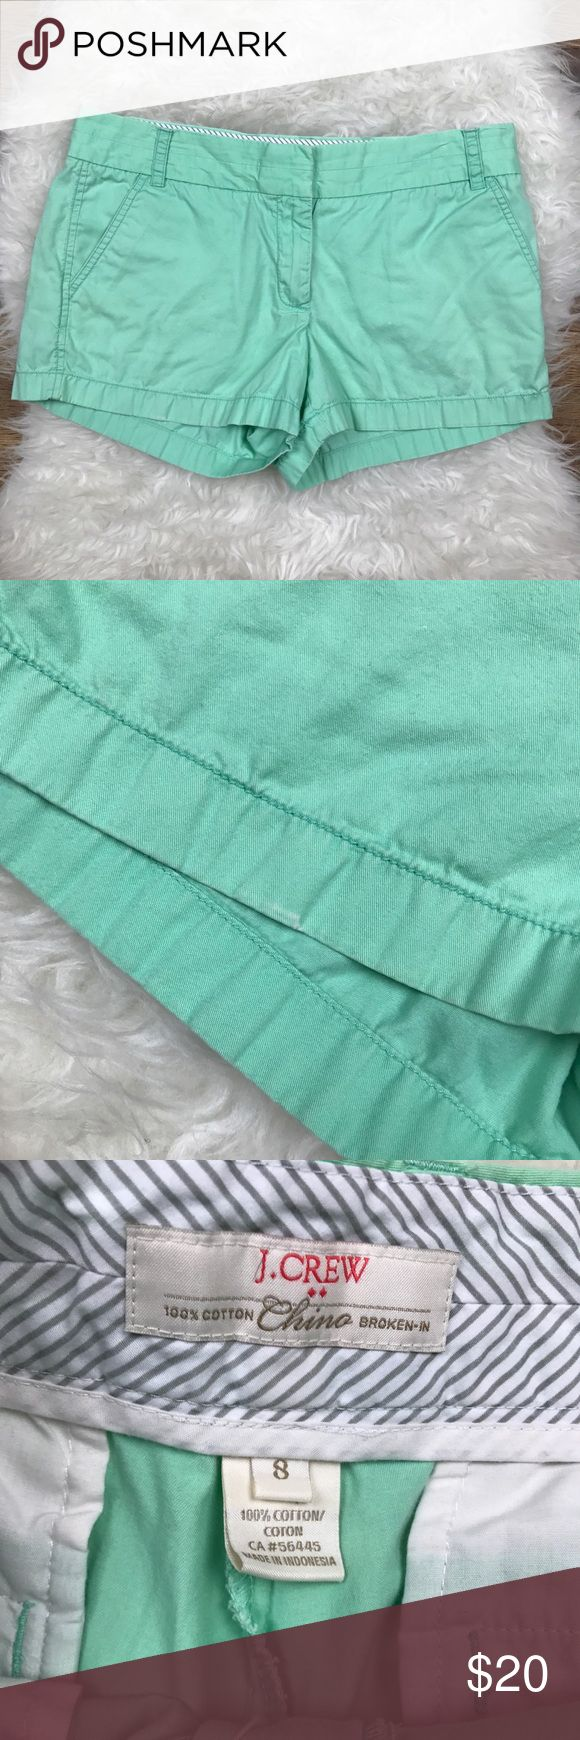 """J. Crew Broken In Chino Mint Shorts Good condition J. Crew Factory Broken In Chino Shorts. Size 8, small mark on bottom of hem seen in picture. 100% cotton. Waistband 34"""", rise 9"""", inseam 3"""". No trades, offers welcome. J. Crew Factory Shorts"""